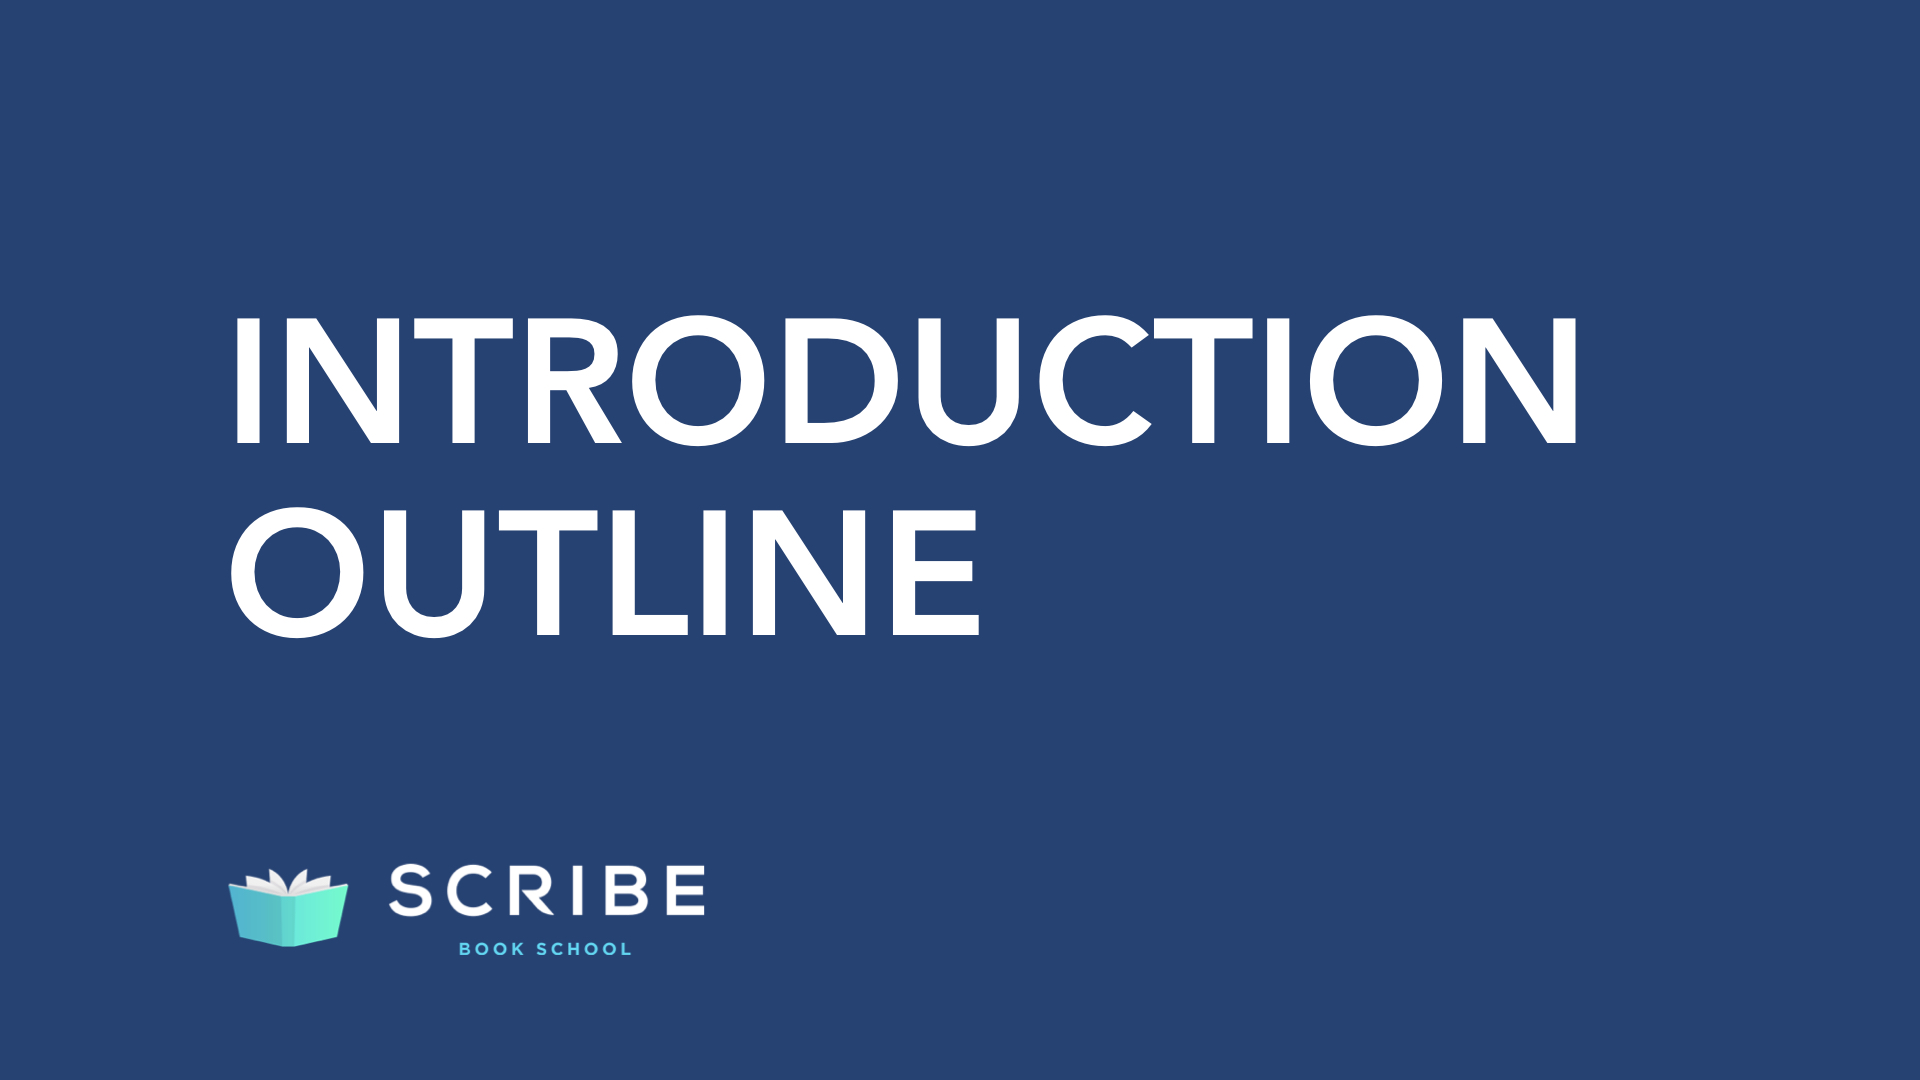 scribe book school introduction outline